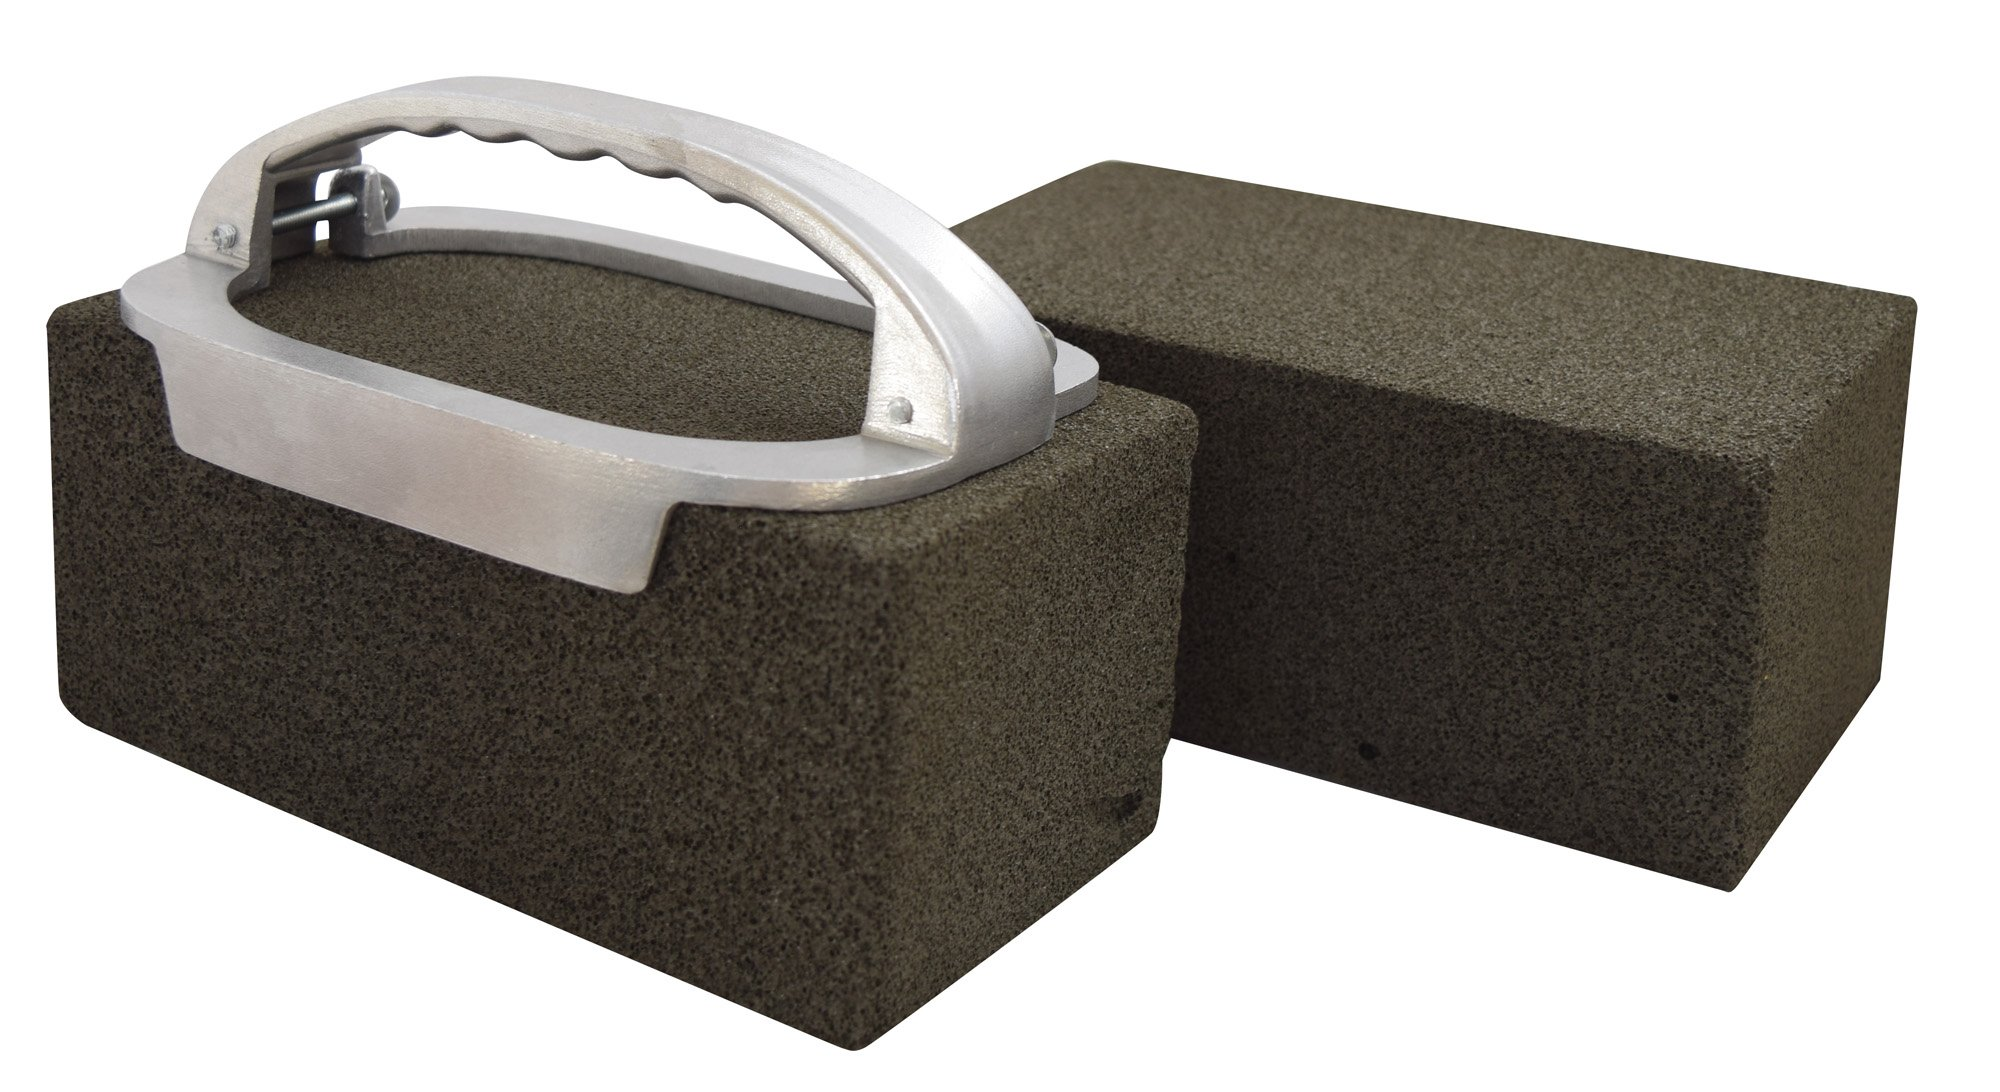 JA Kitchens Grill Brick Holder and Two Grill Bricks - Cleans Griddles and Grills by JA Kitchens